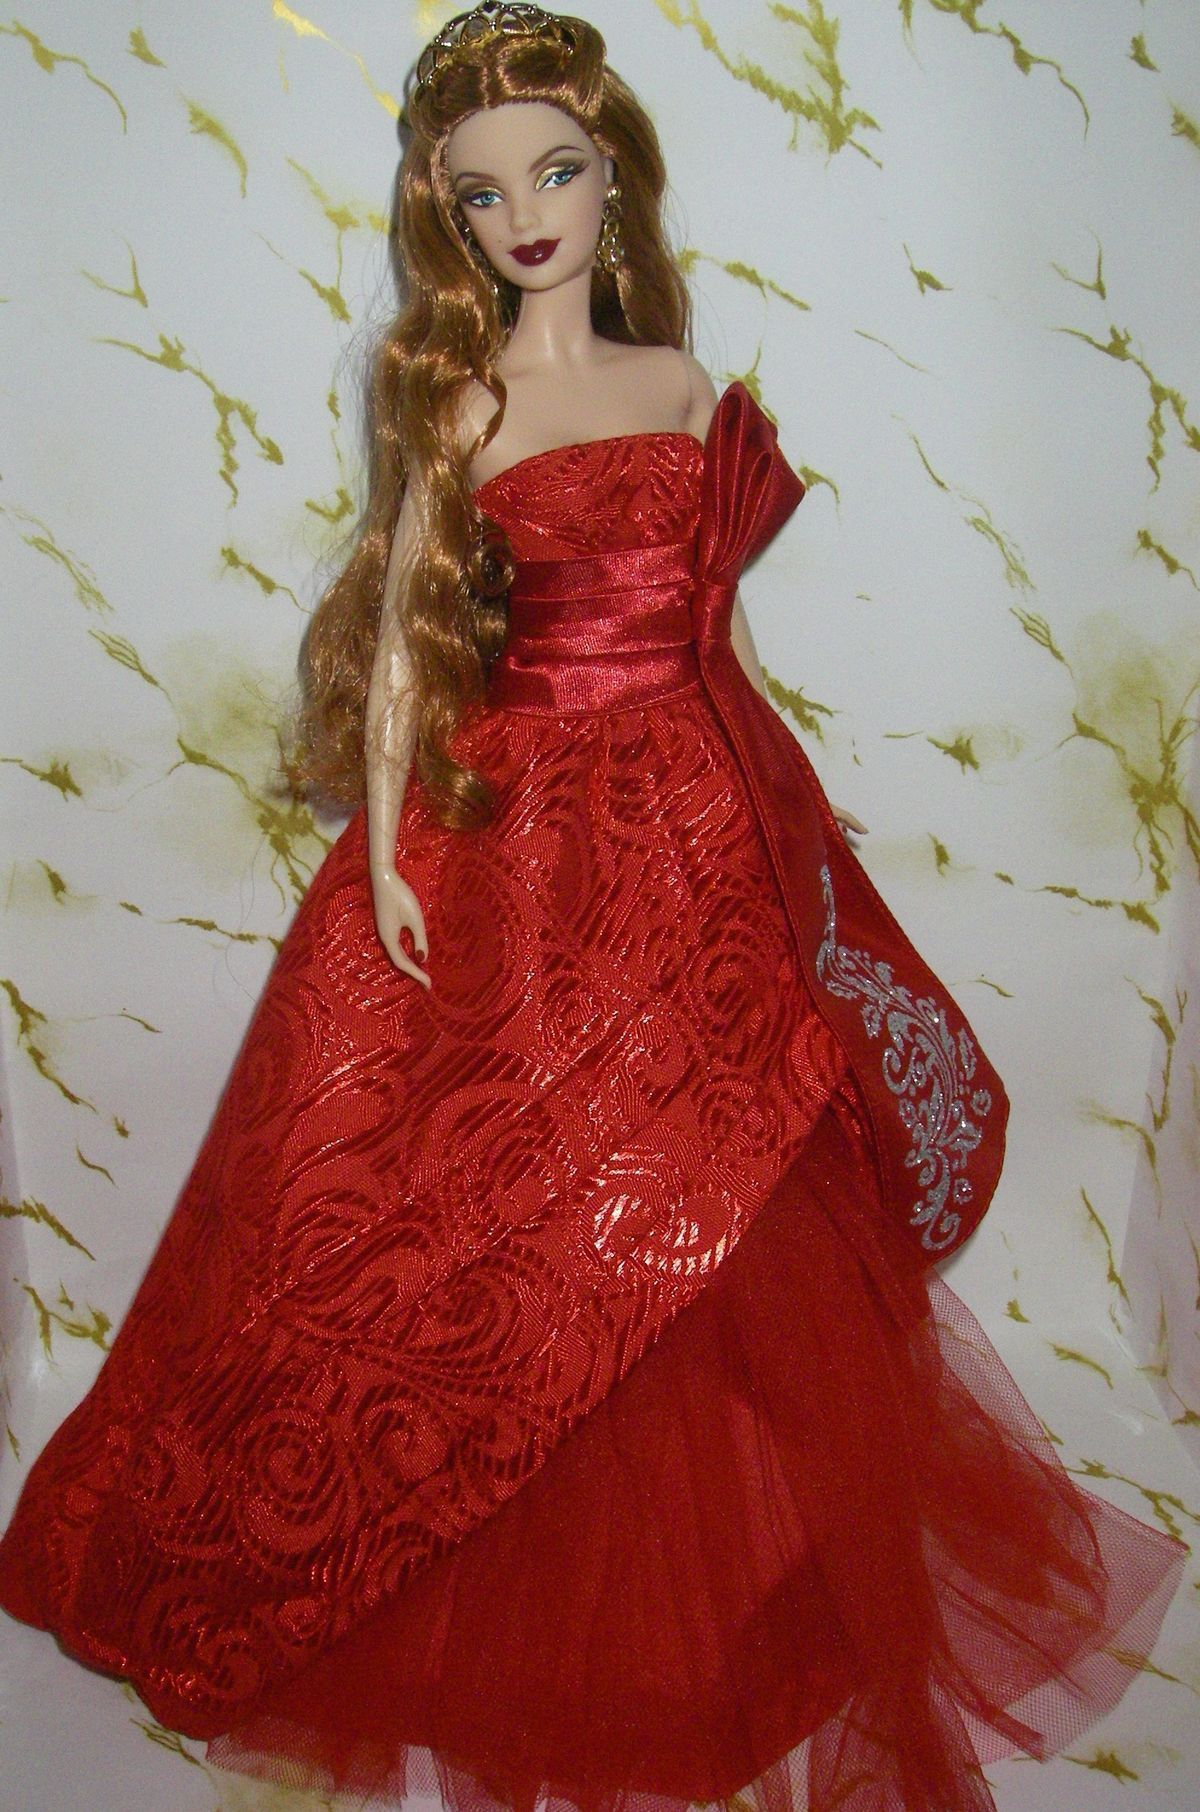 EVENING W ~ DRESS ~ MODEL MUSE BARBIE DOLL HOLIDAY RED GOLD TULLE RIBBON GOWN